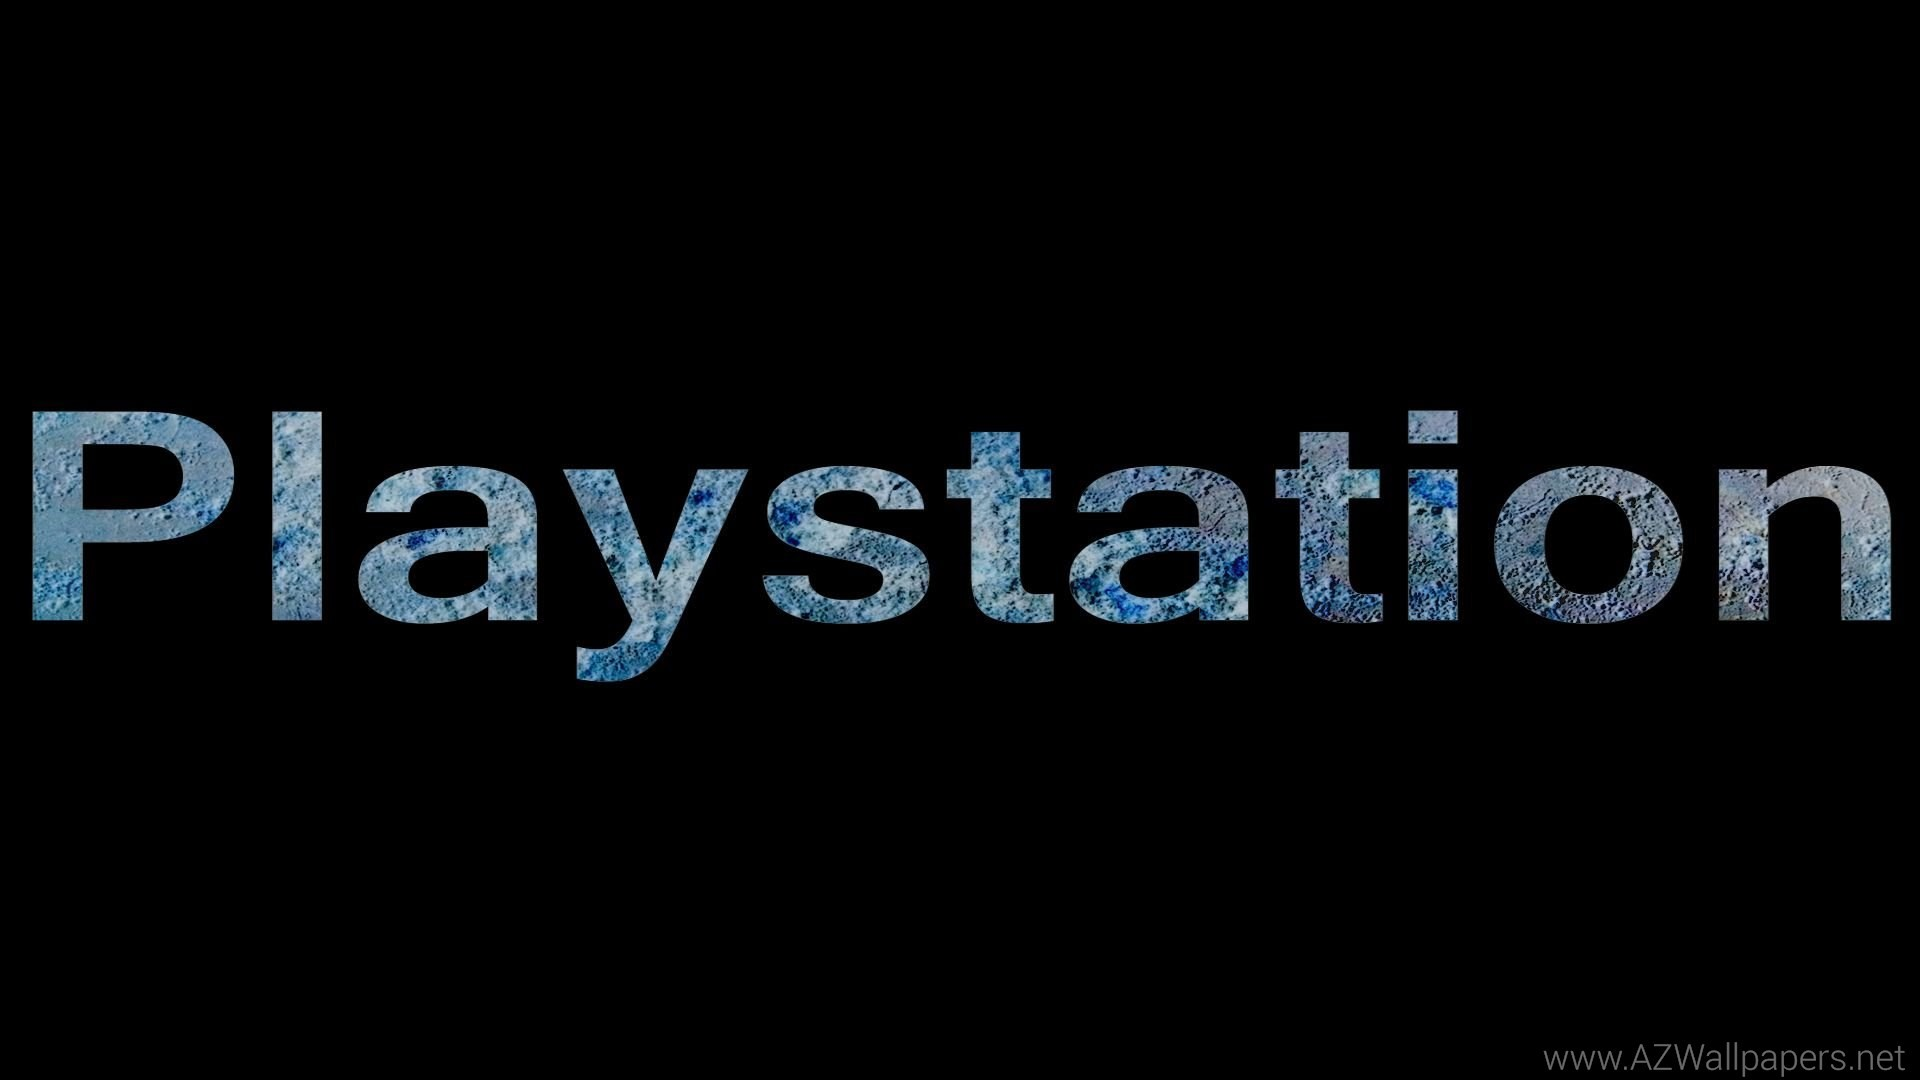 Ps Vita Wallpapers, HDQ Ps Vita Images Collection for Desktop, VV.65